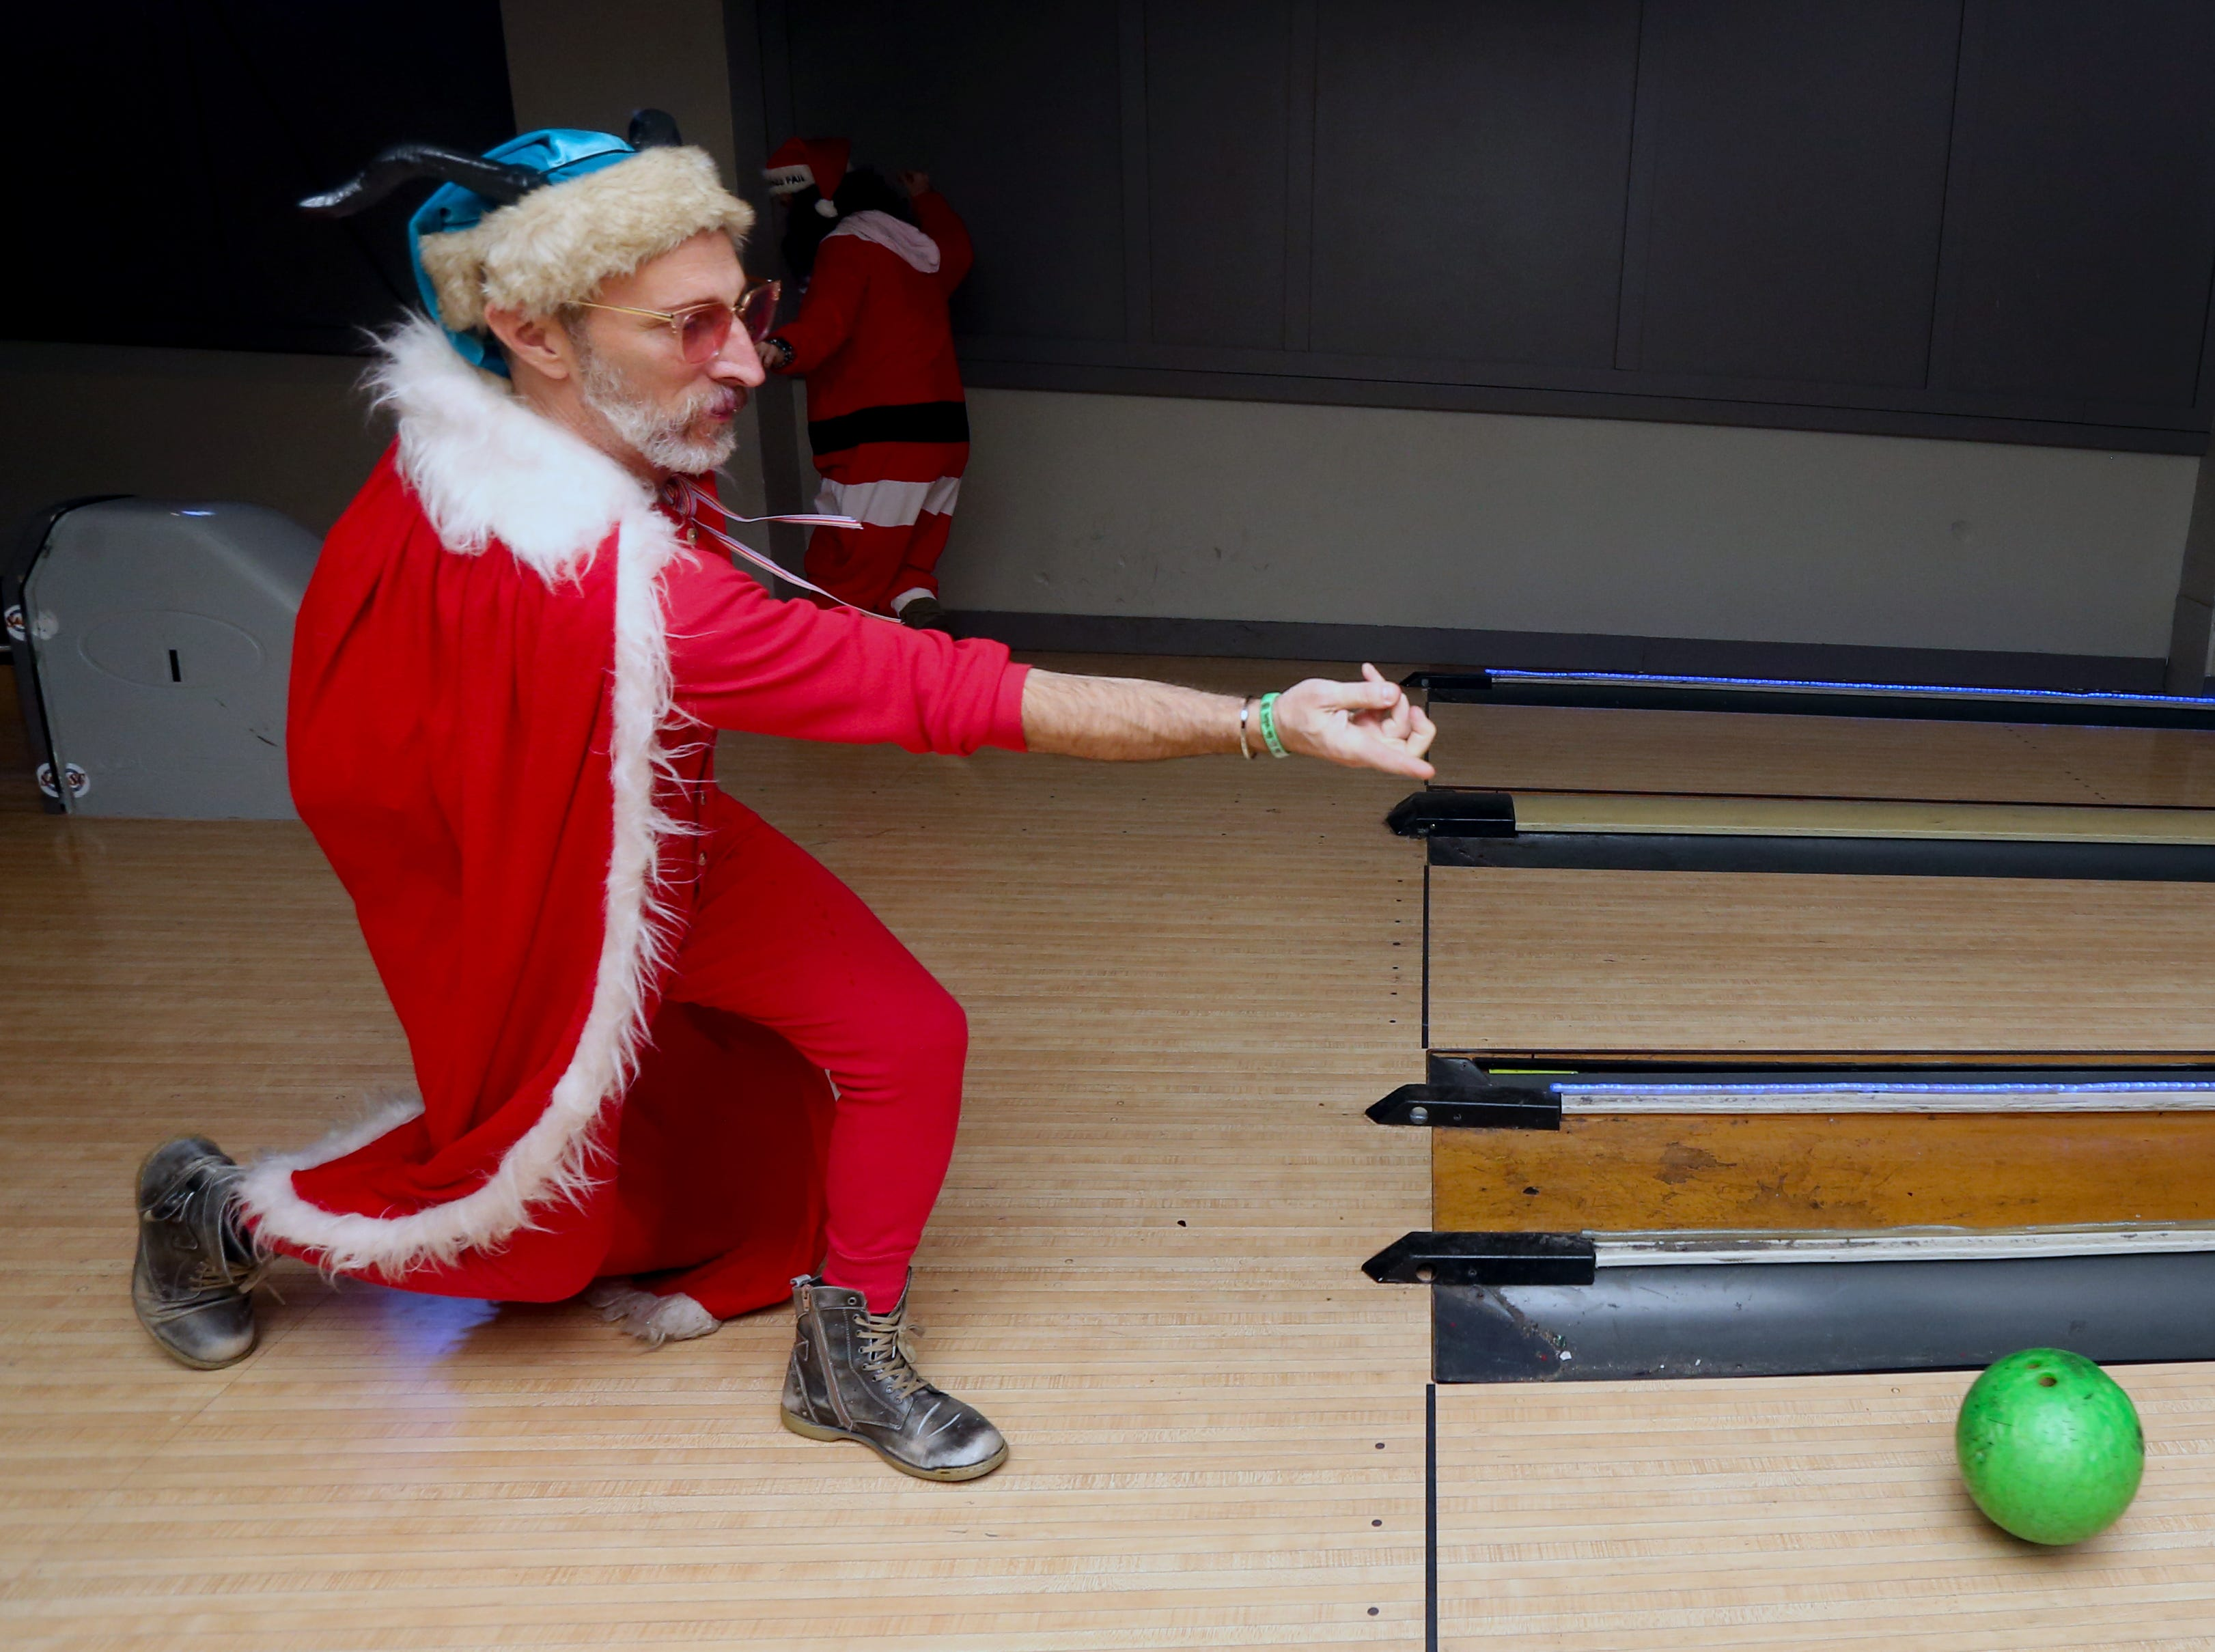 J.D. Dotson bowls at the Sports & Social Club as one of the stops along the SantaCon trail. Dec. 8, 2018